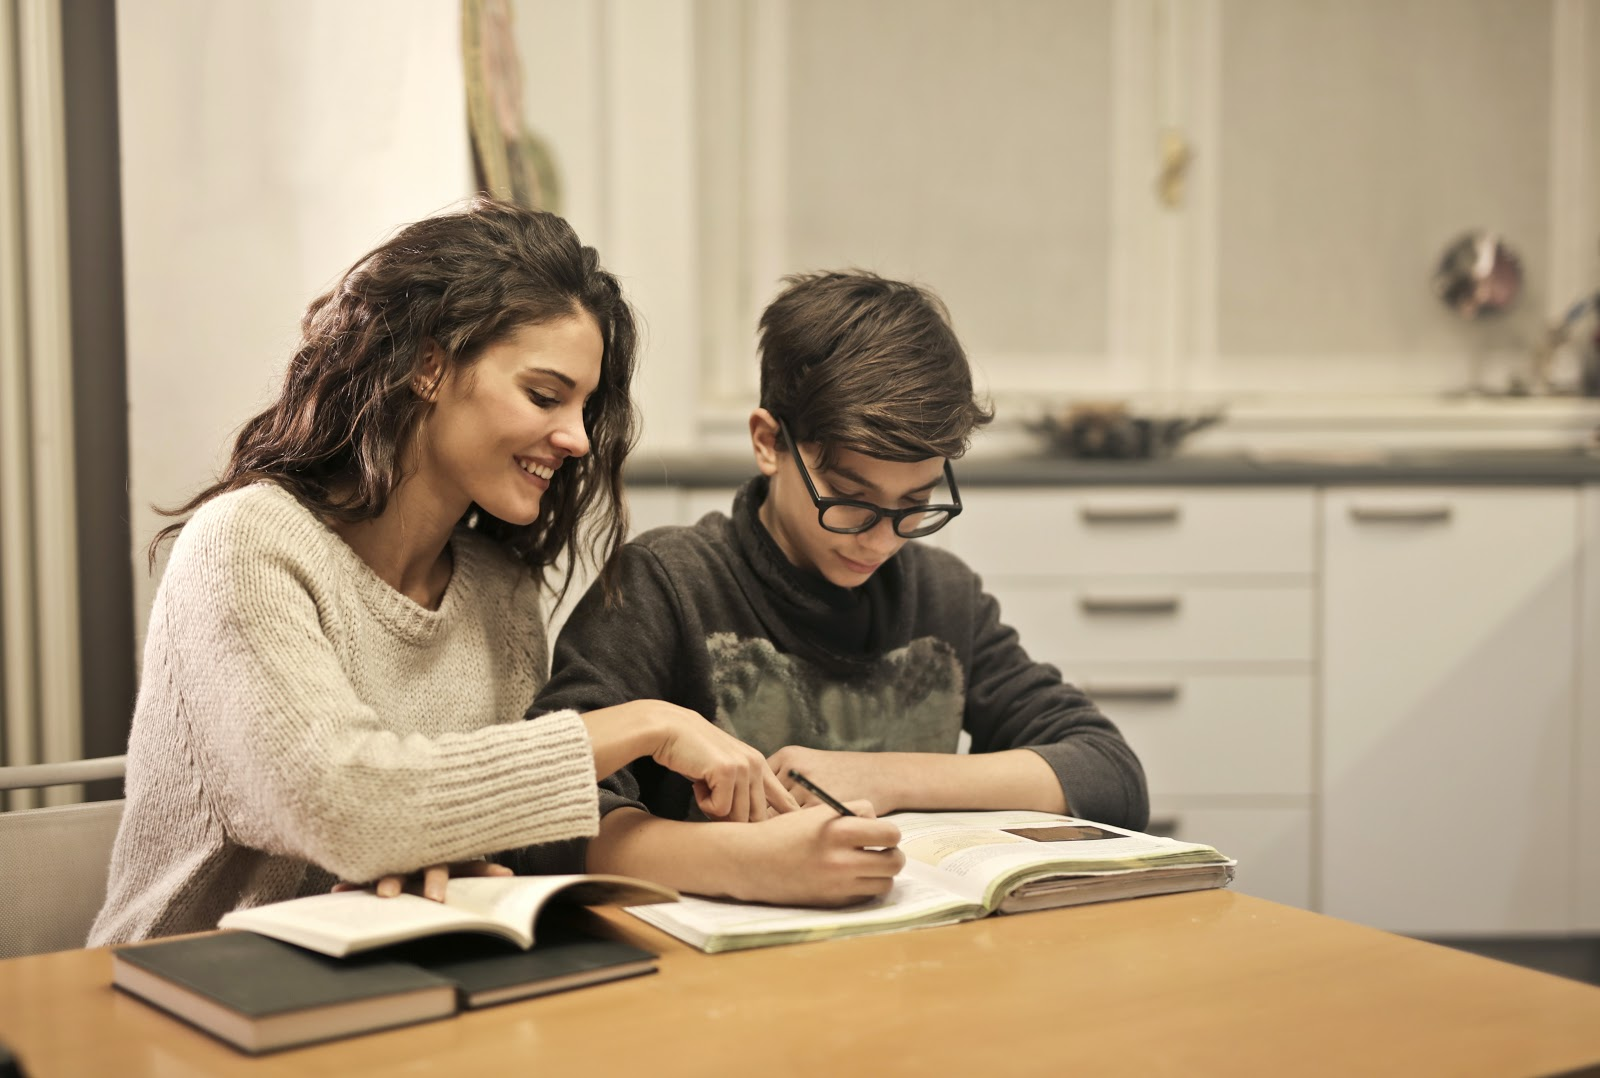 elder-sister-and-brother-studying-at-home-3769981-1